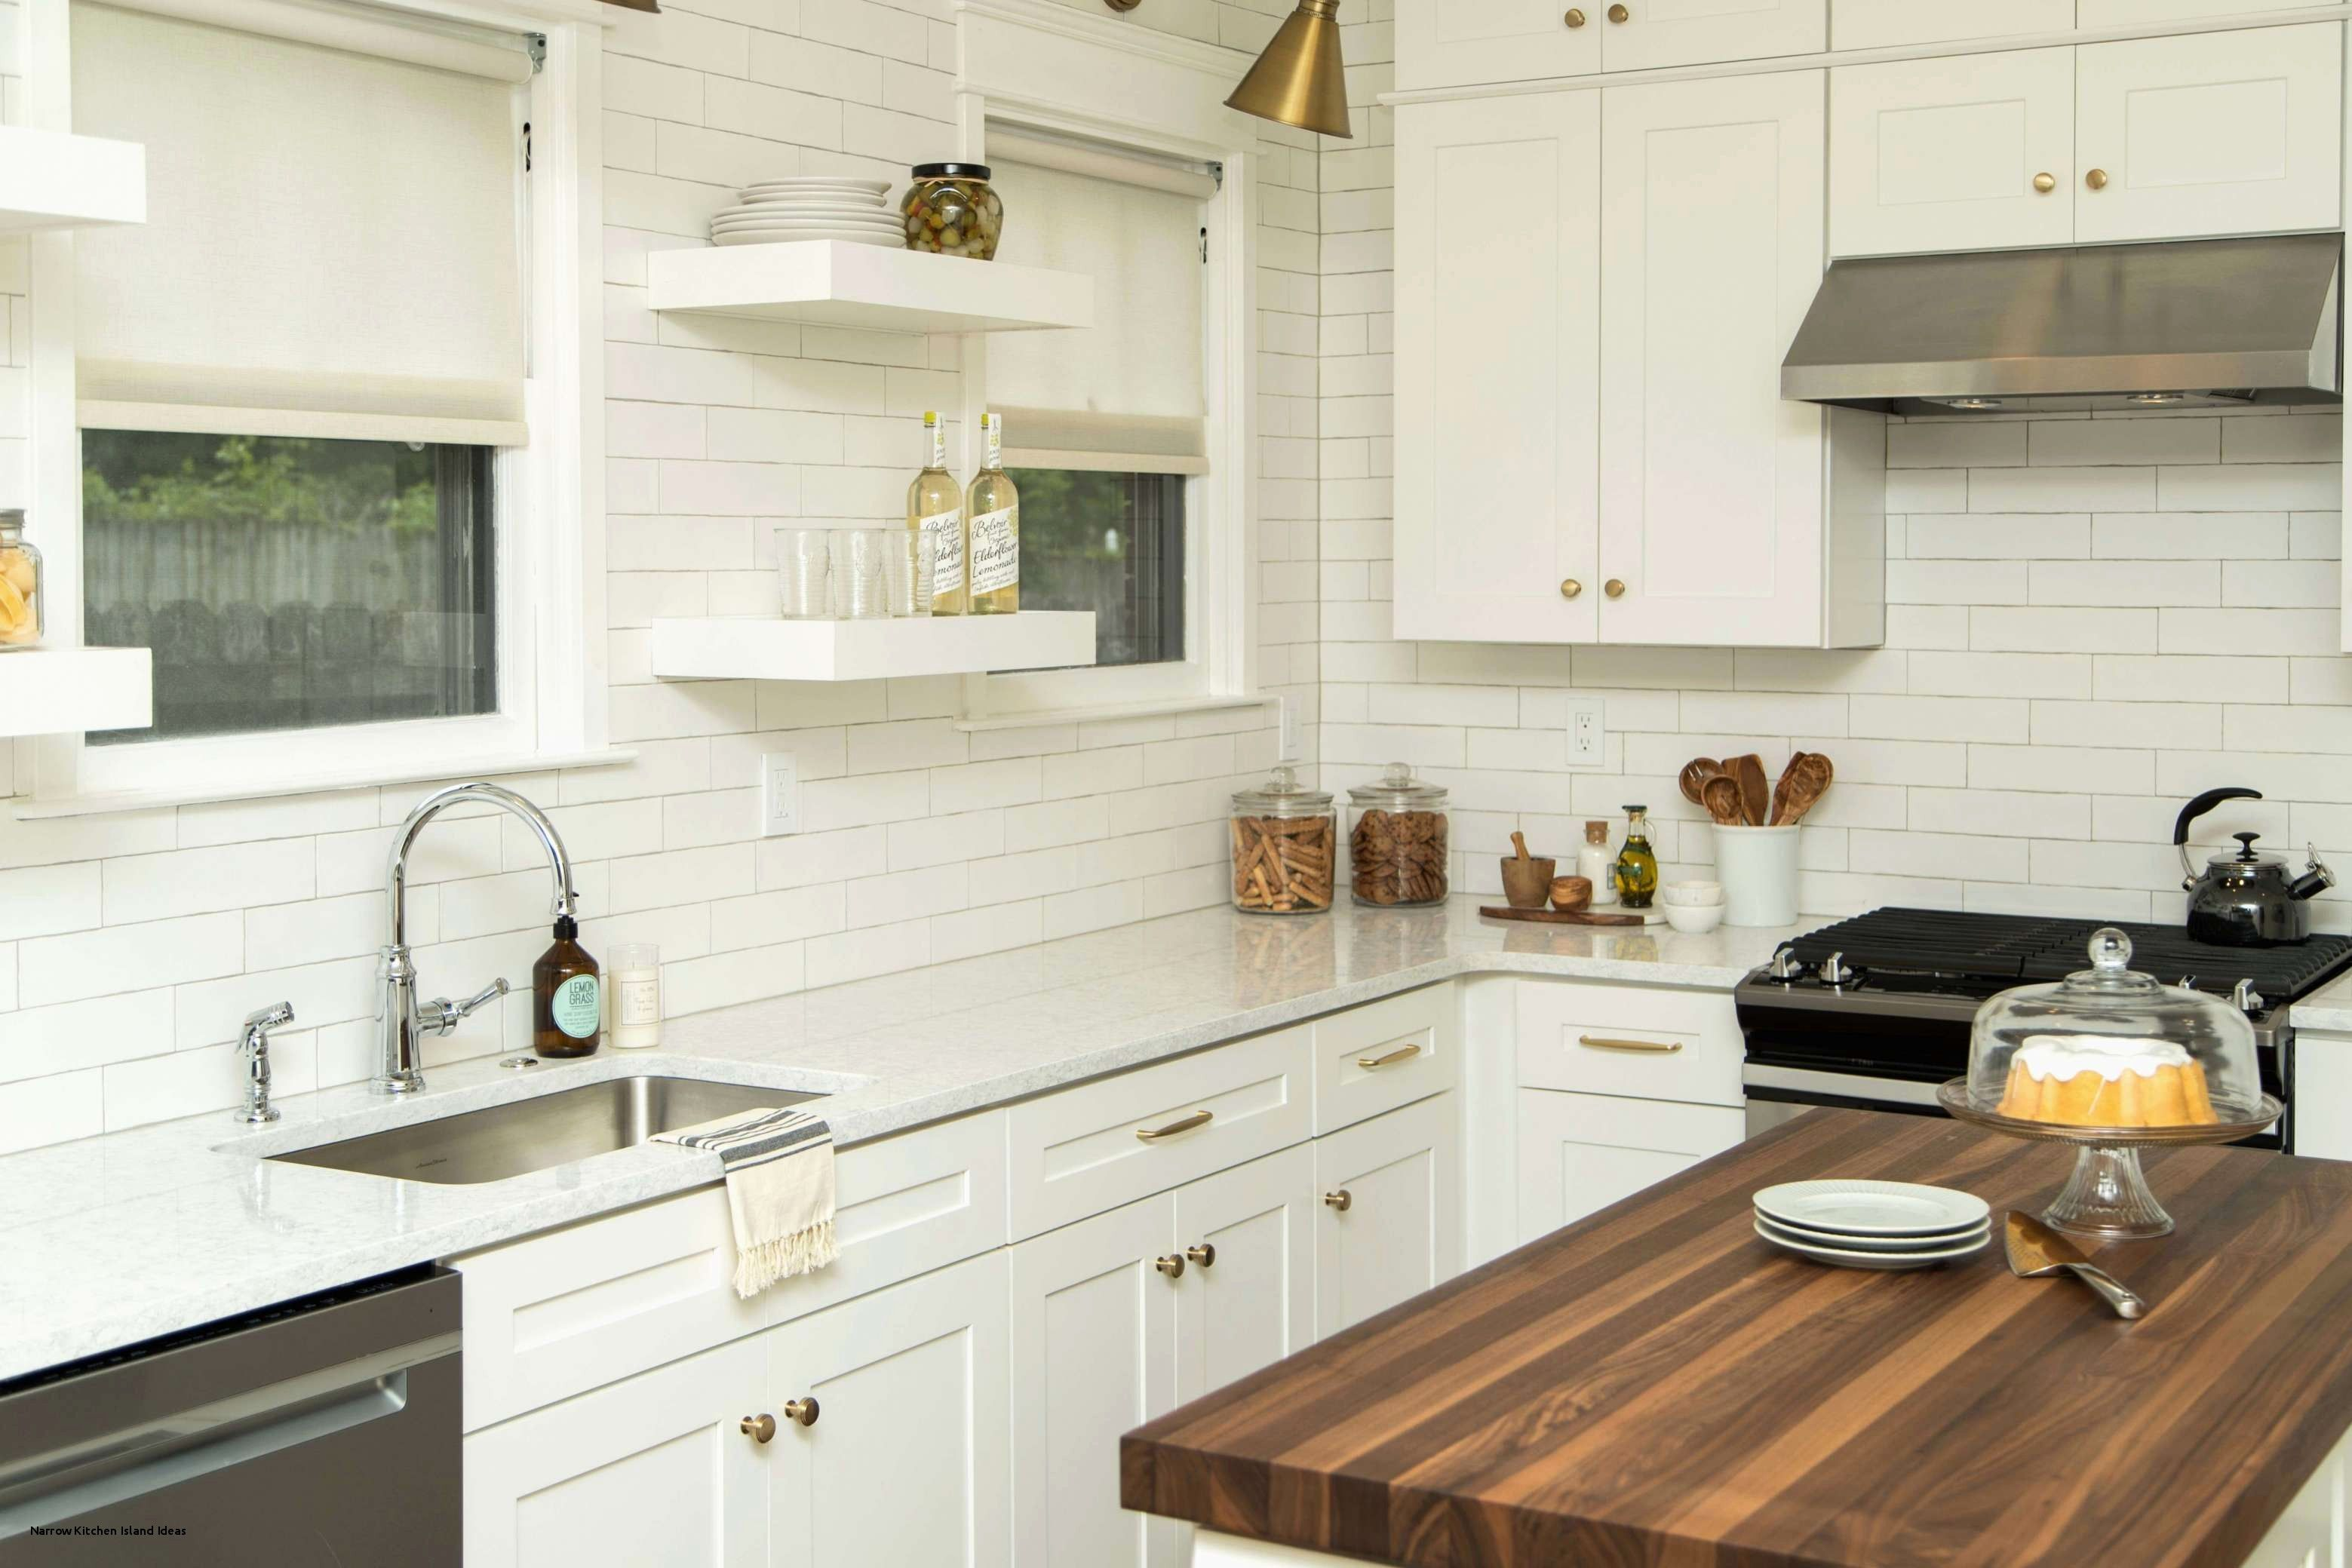 9 Unique Kitchen Island Styles In 2020 With Images Buying Kitchen Appliances Outdoor Kitchen Cabinets Metal Kitchen Cabinets